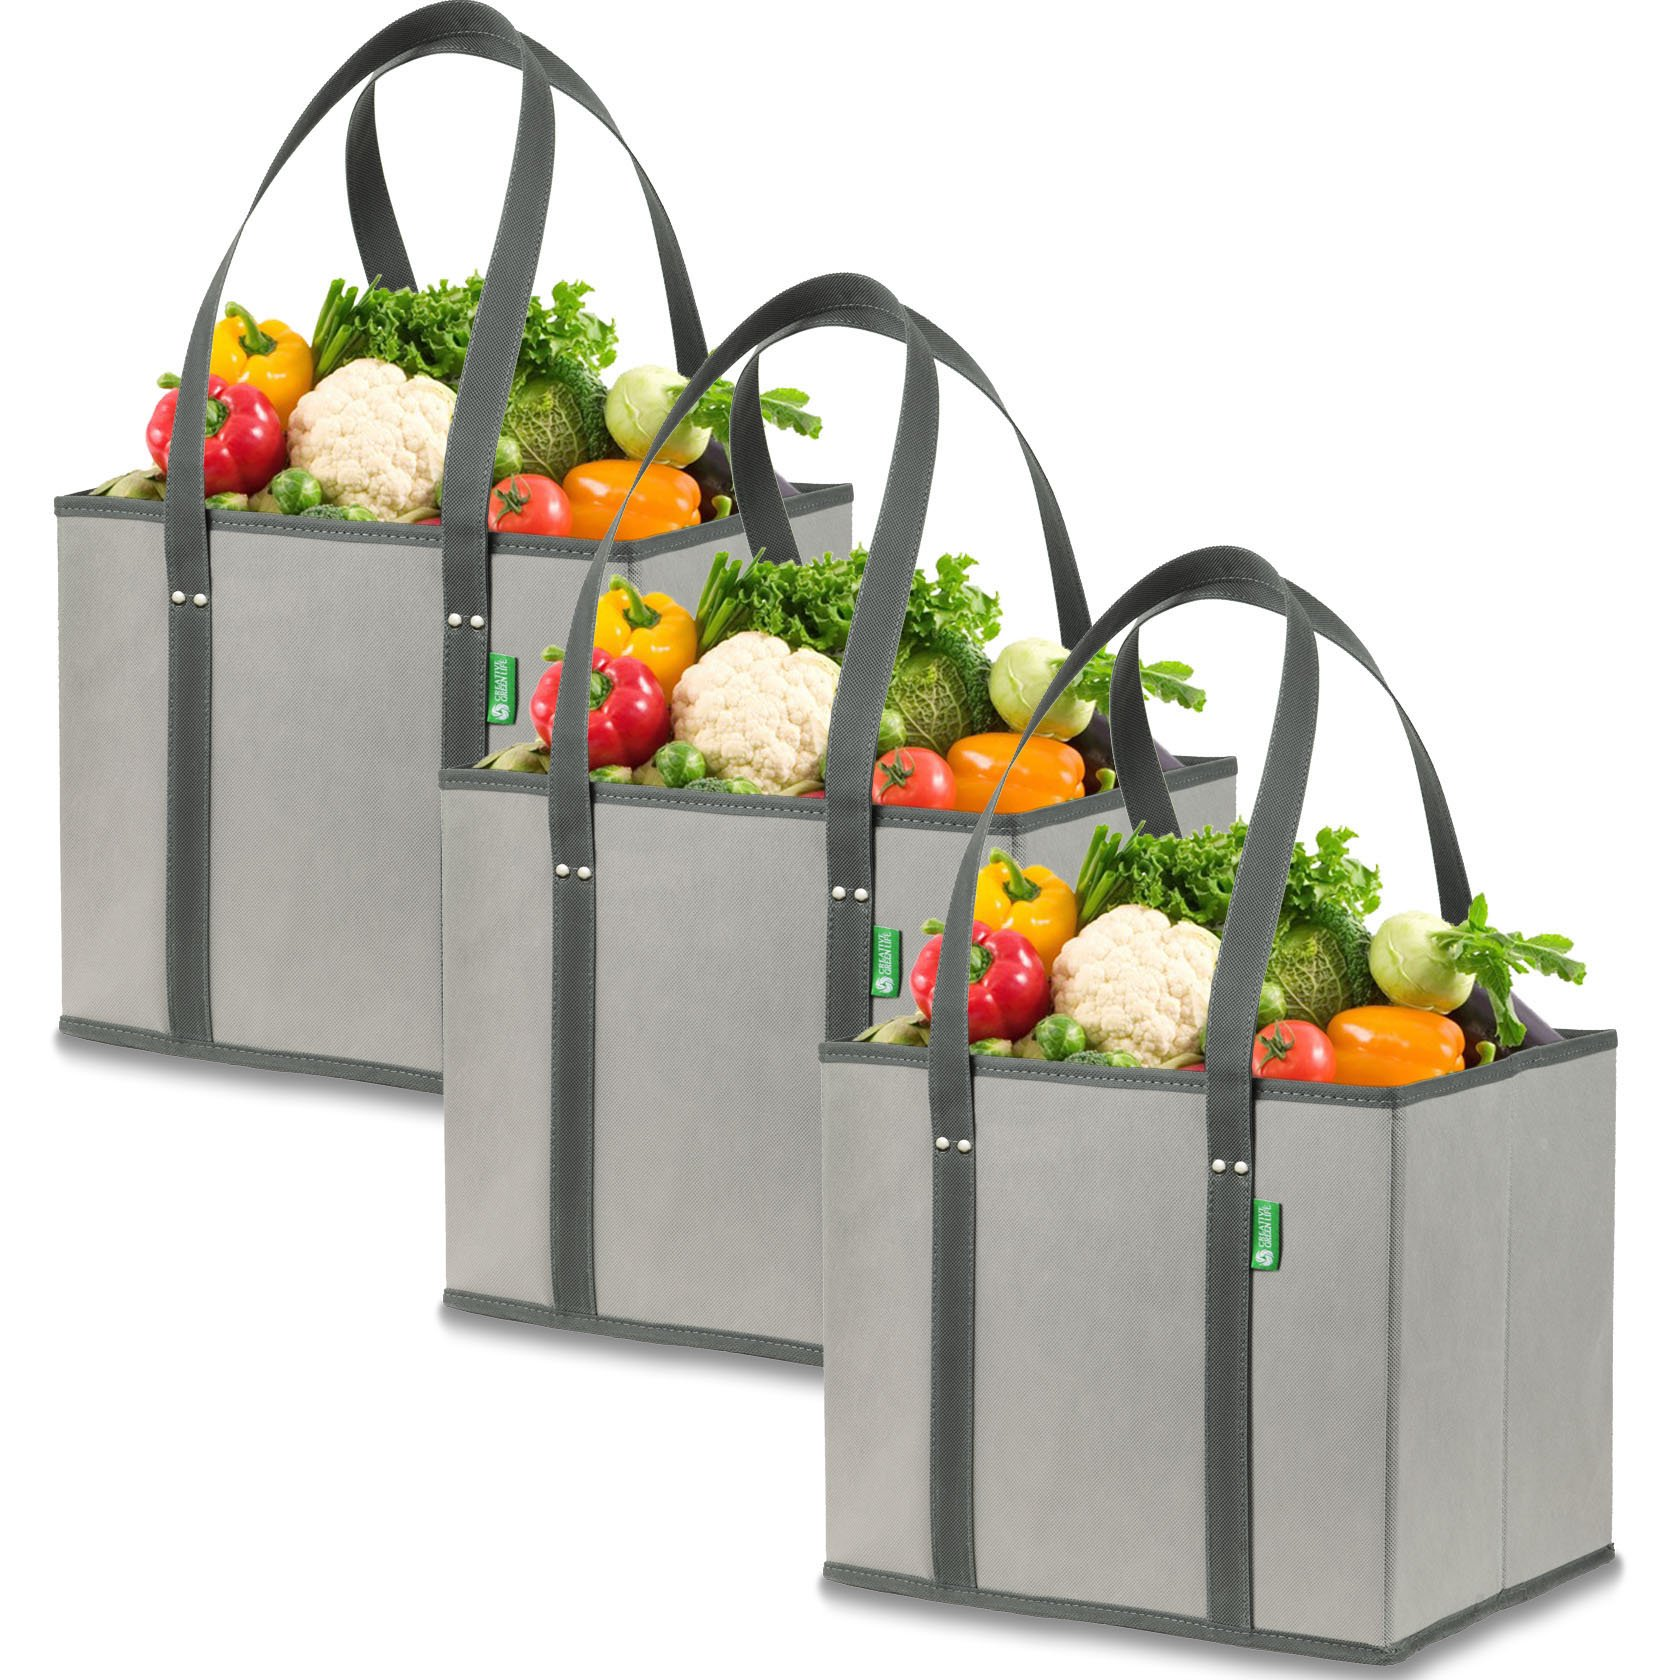 Reusable Grocery Shopping Box Bags (3 Pack - Gray). Large, Premium Quality Heavy Duty Tote Bag Set with Extra Long Handles & Reinforced Bottom. Foldable, Collapsible, Durable & Eco Friendly